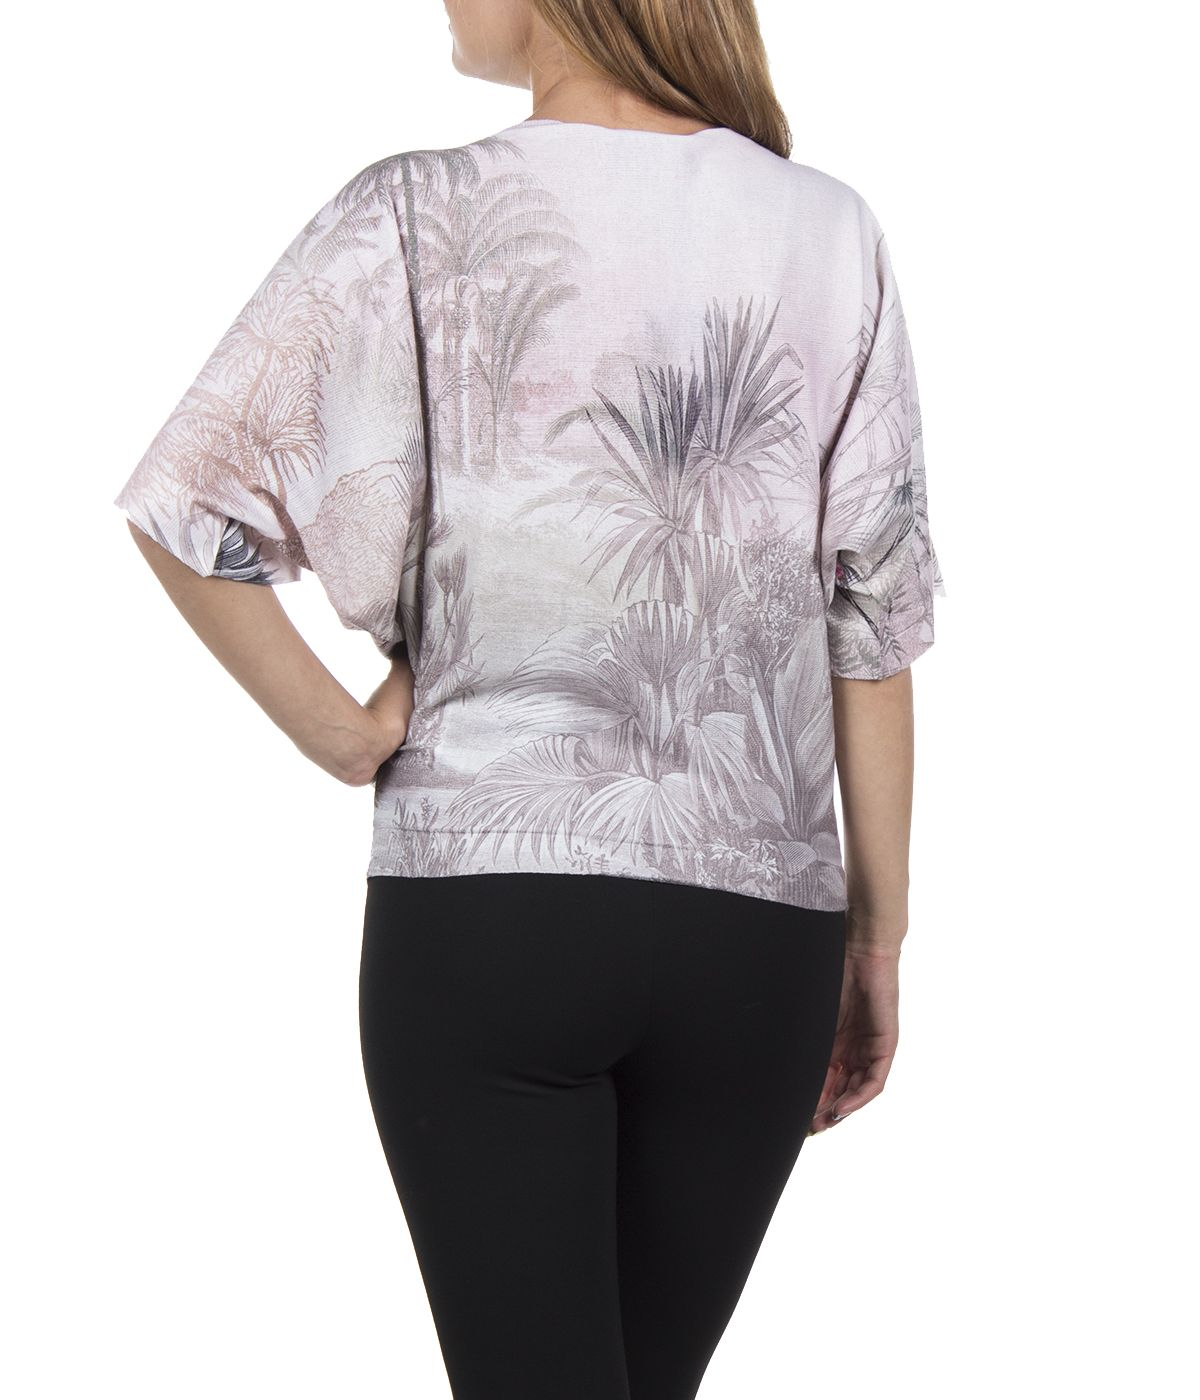 PRINTED BLOUSE WITH PALMS, FLOWERS AND ANIMALS 3